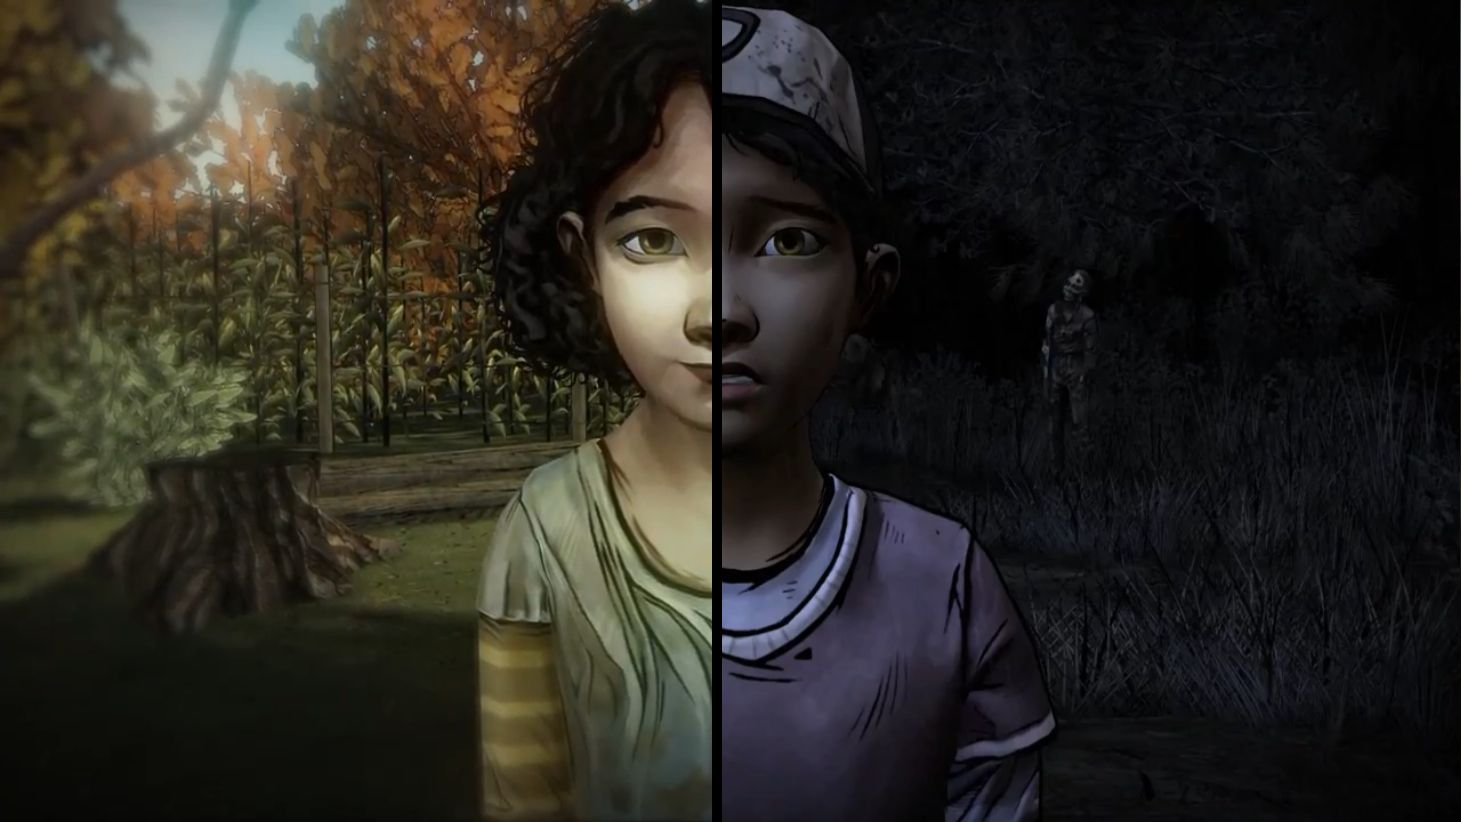 fb0b9acd4985e410ab57a1cbdb5c2b0d - How To Get Episode 2 On The Walking Dead Game